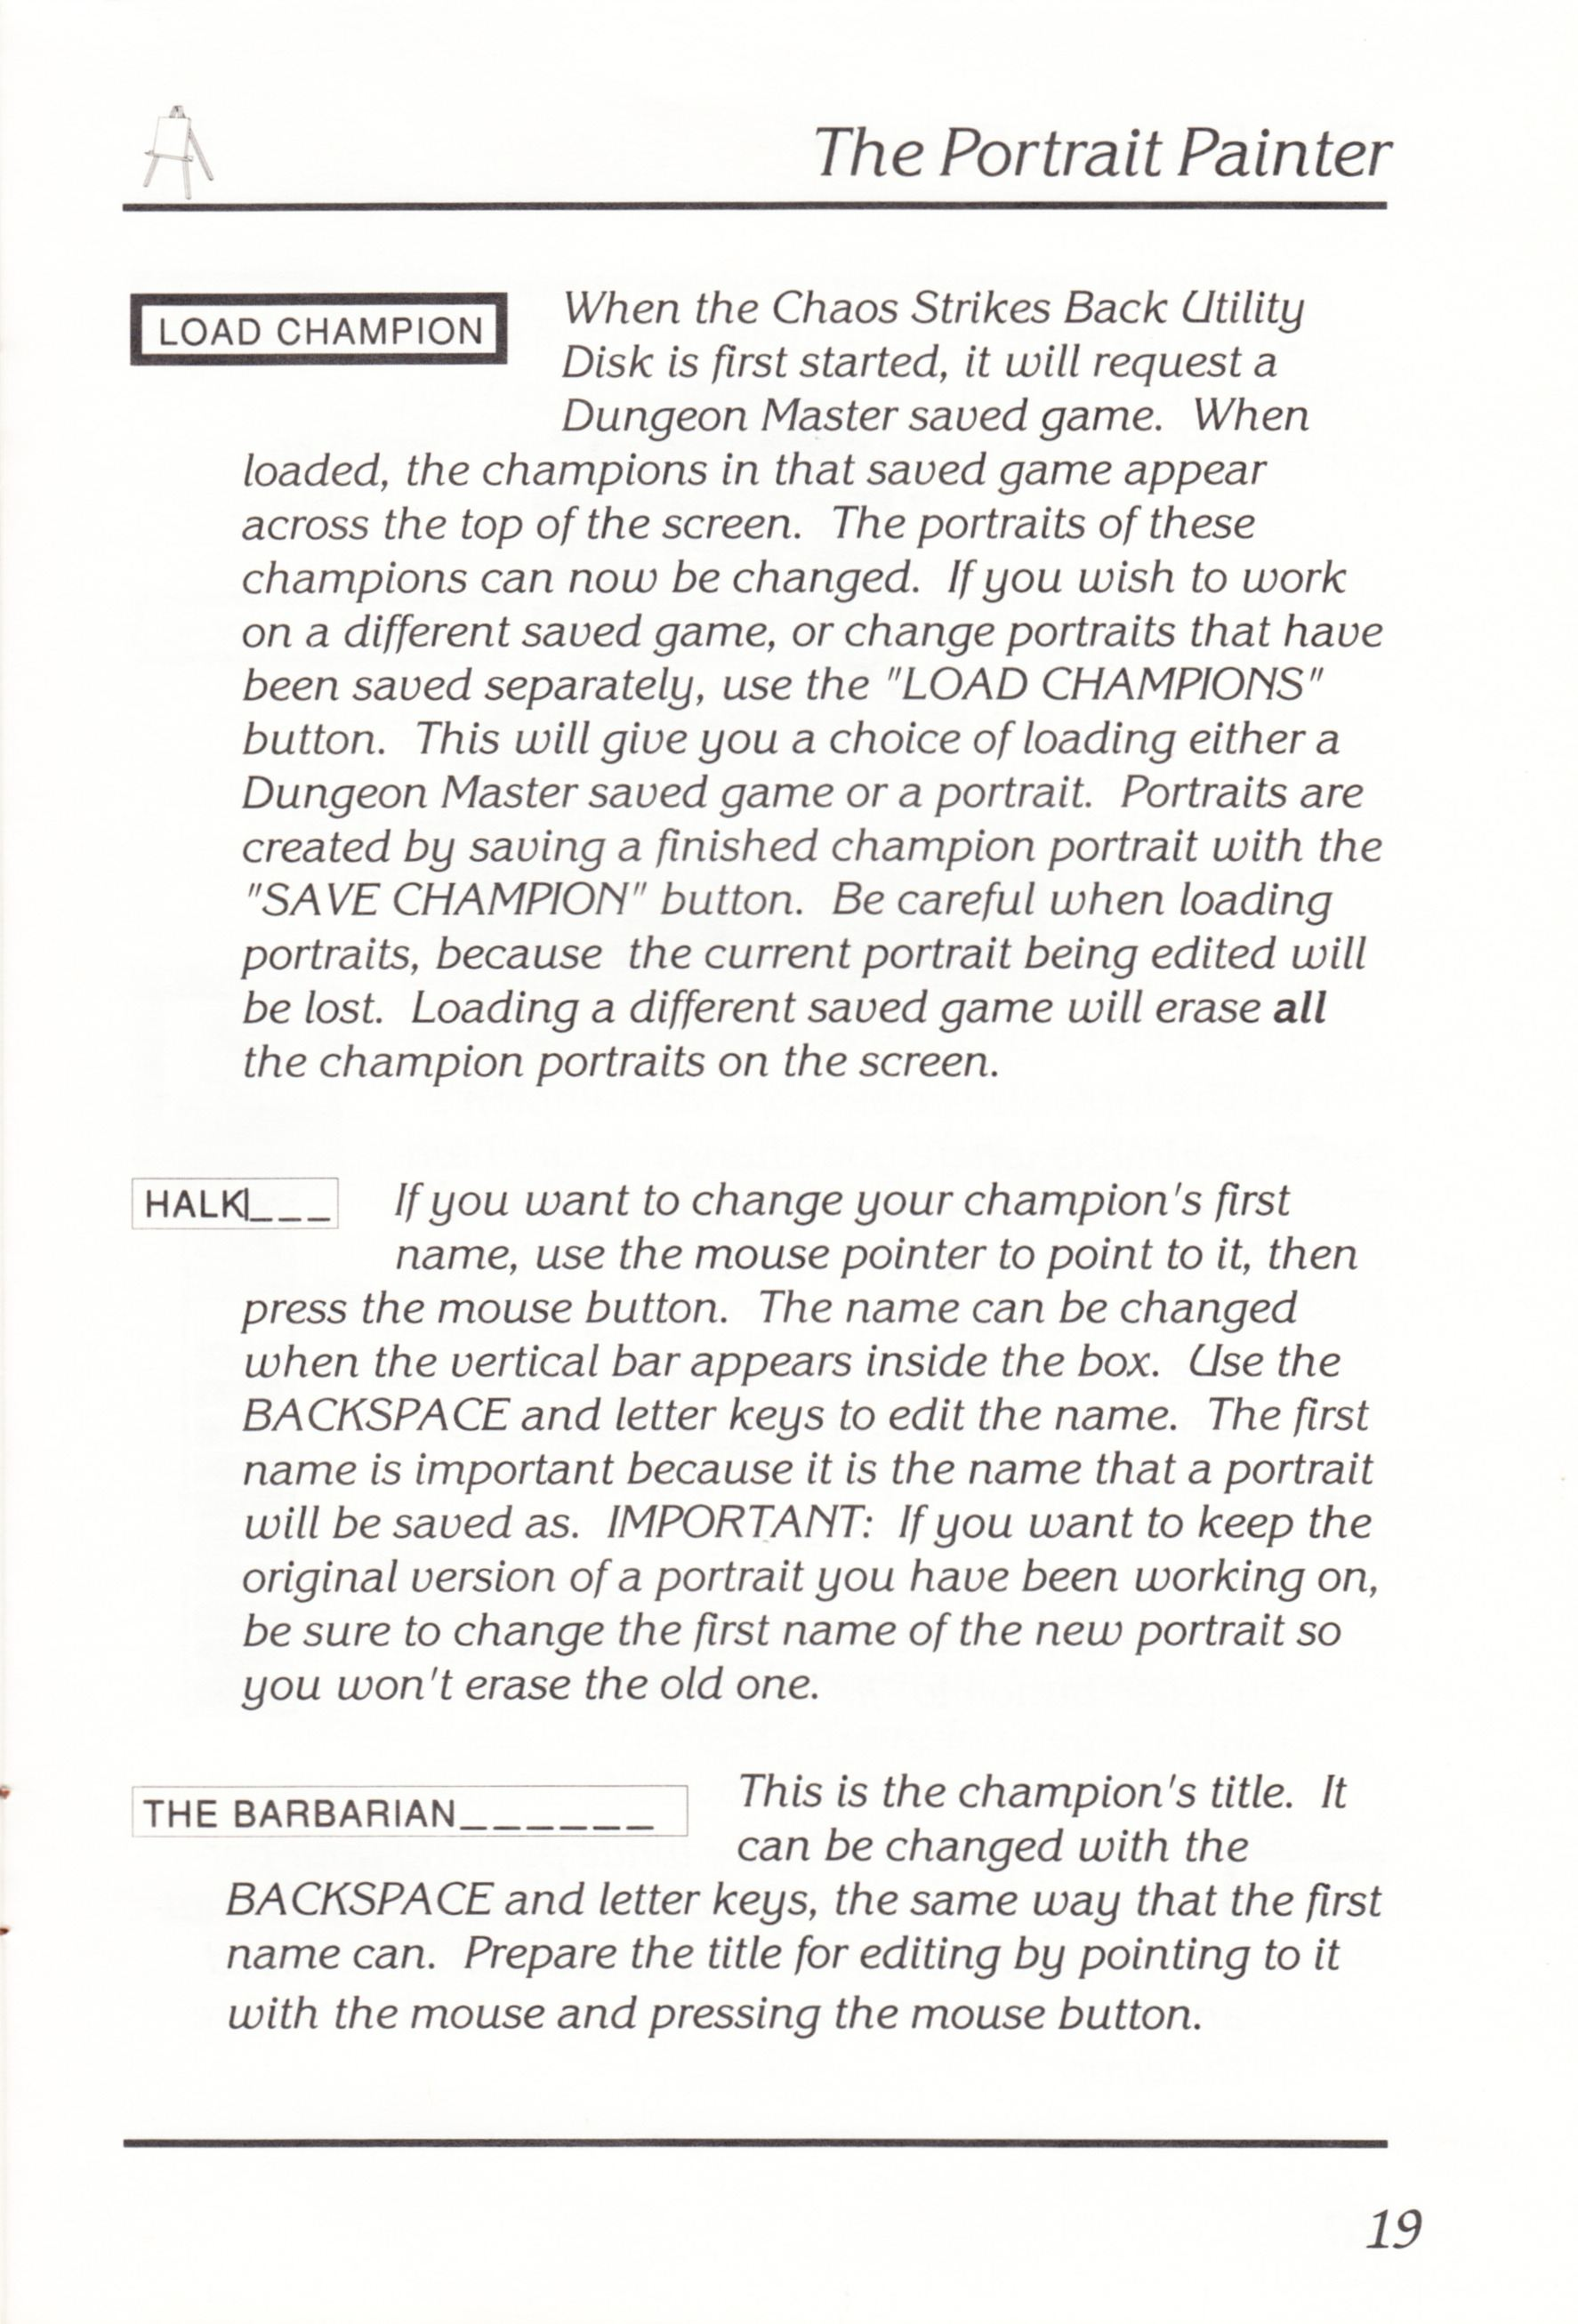 Game - Chaos Strikes Back - UK - Atari ST - Manual - Page 021 - Scan